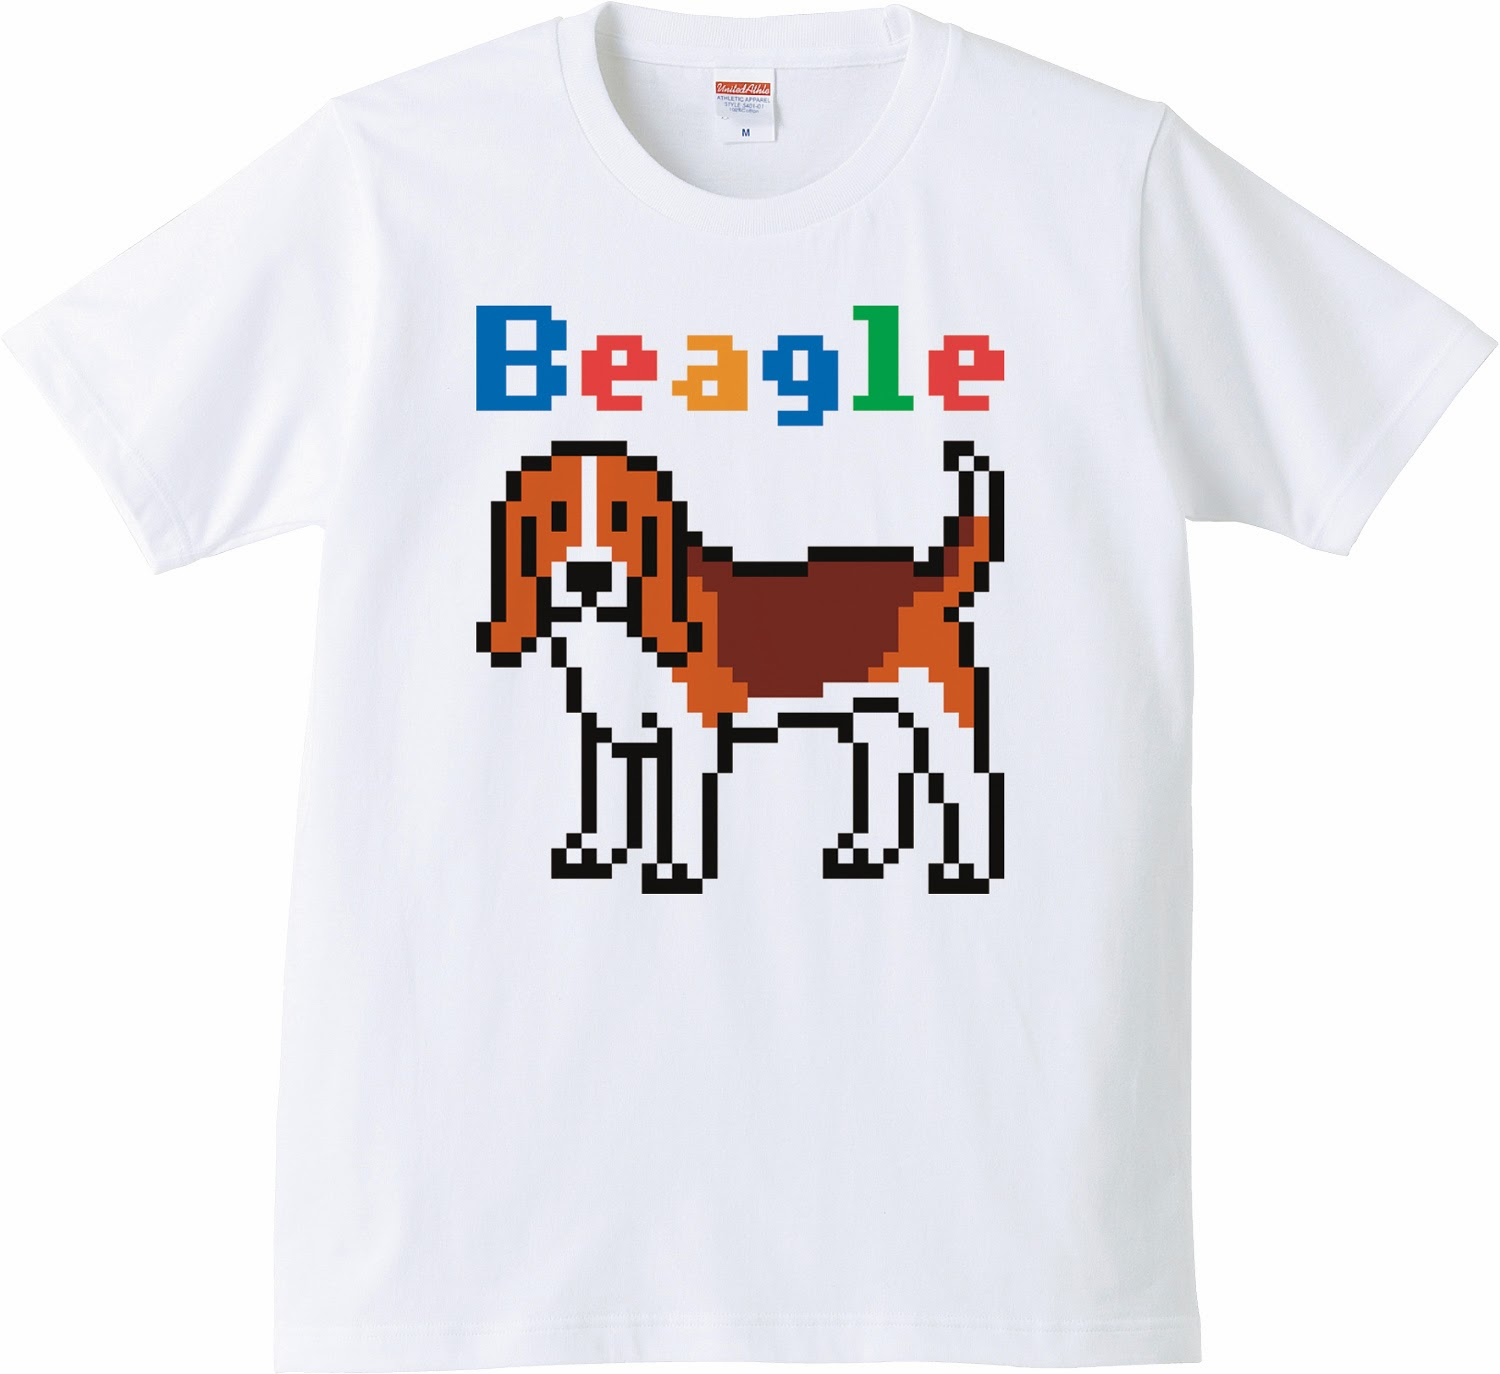 Pixel Party Boy「Beagle犬索」[Standard T-Shirt] 5.0oz | T-SHIRT COUNCIL